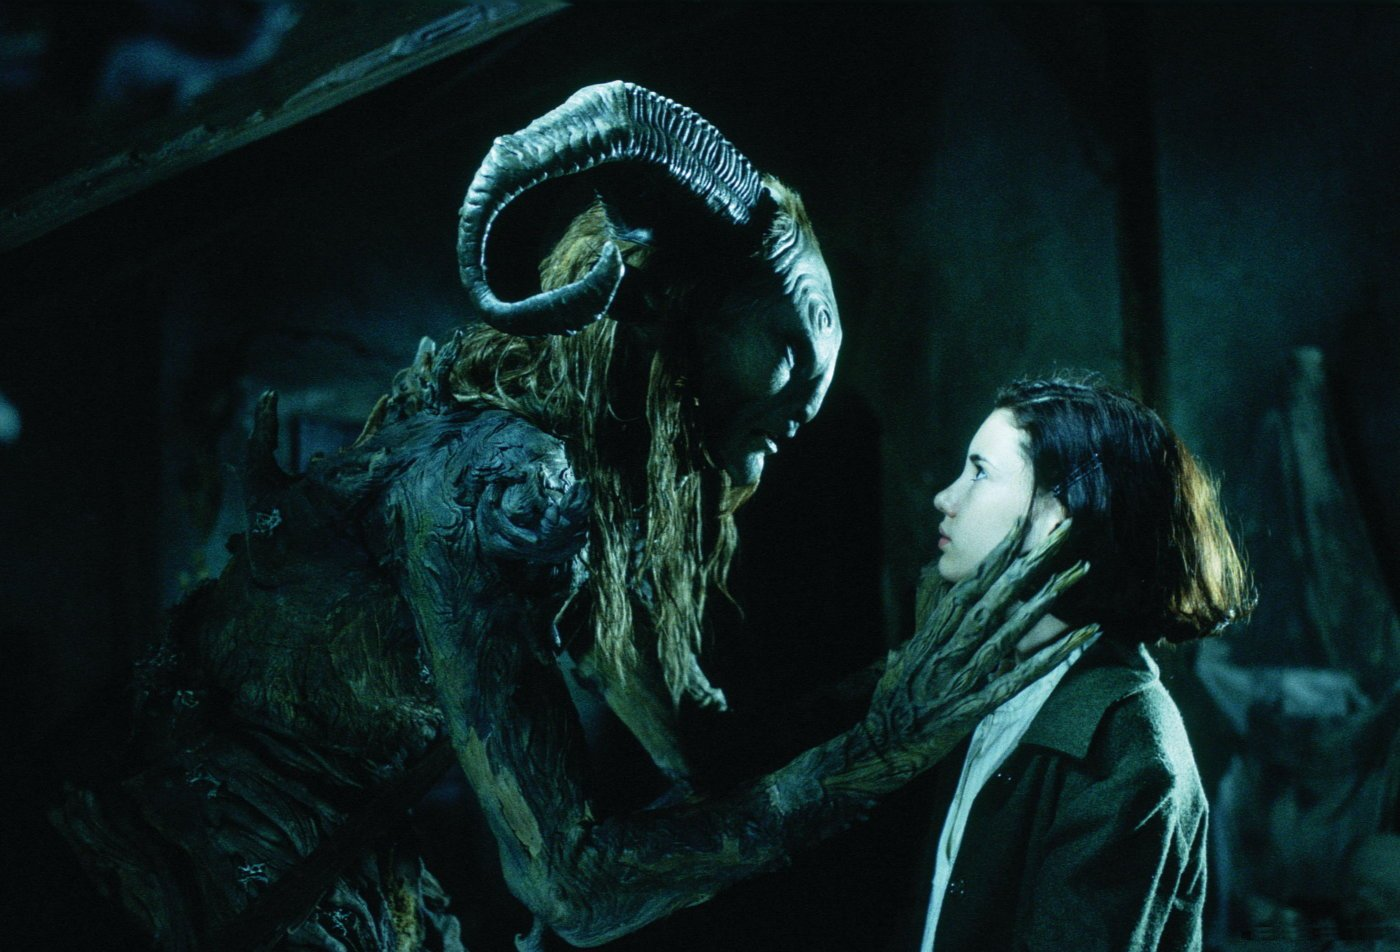 Ivana Baquero as Ofelia with Faun Pan's Labyrinth picture image